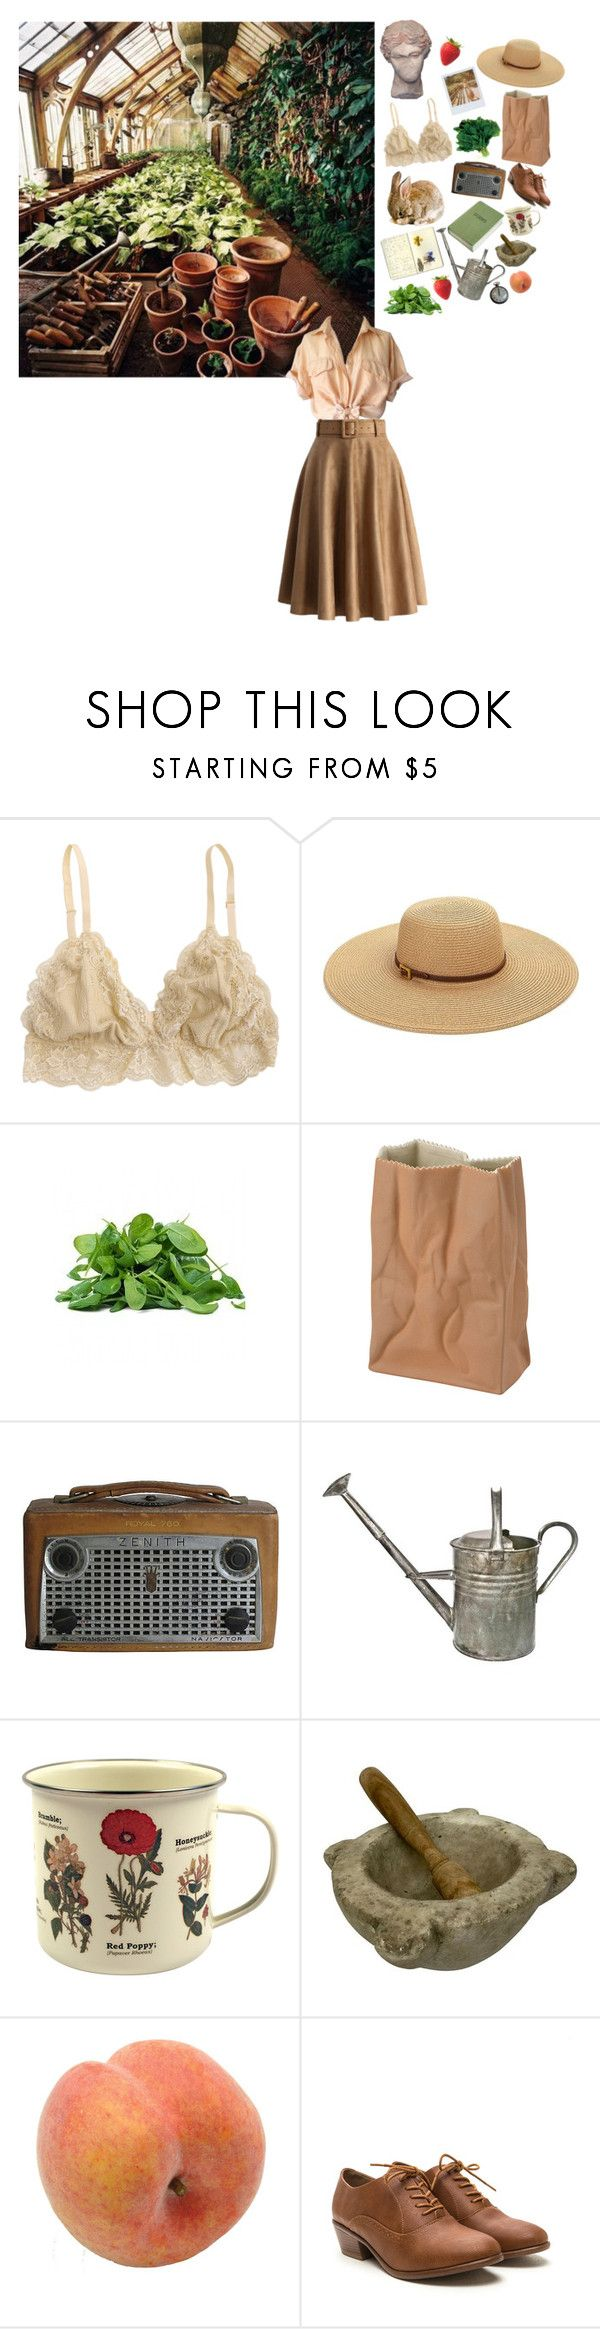 """...""I do not have time for the things that have no soul."""" by musicislife-983 on Polyvore featuring Melissa Odabash, Band of Outsiders, Rosenthal, Moleskine, Dot & Bo and Pavilion Broadway"